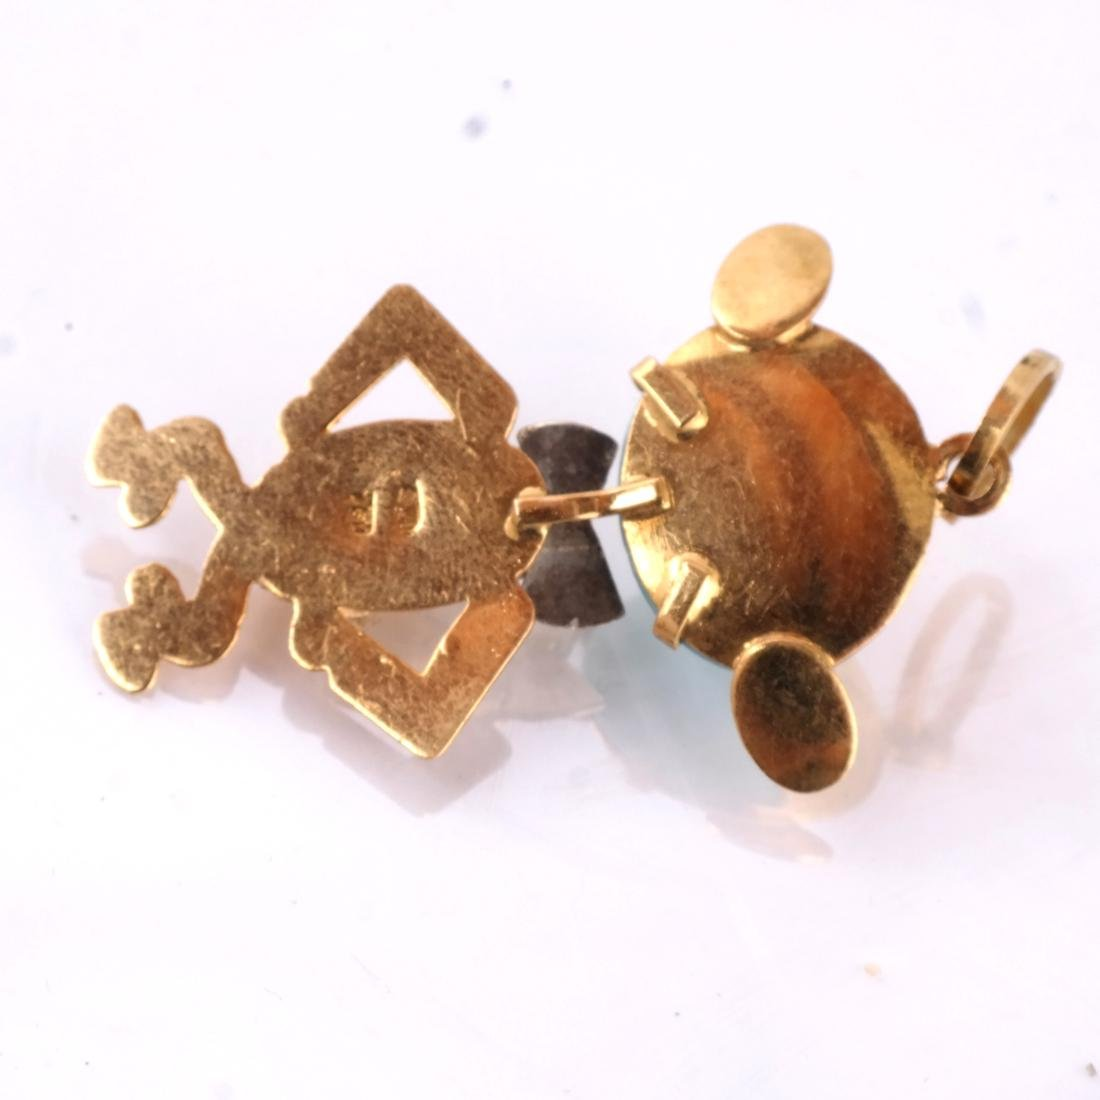 18k Charms, Lot of 2 - 3